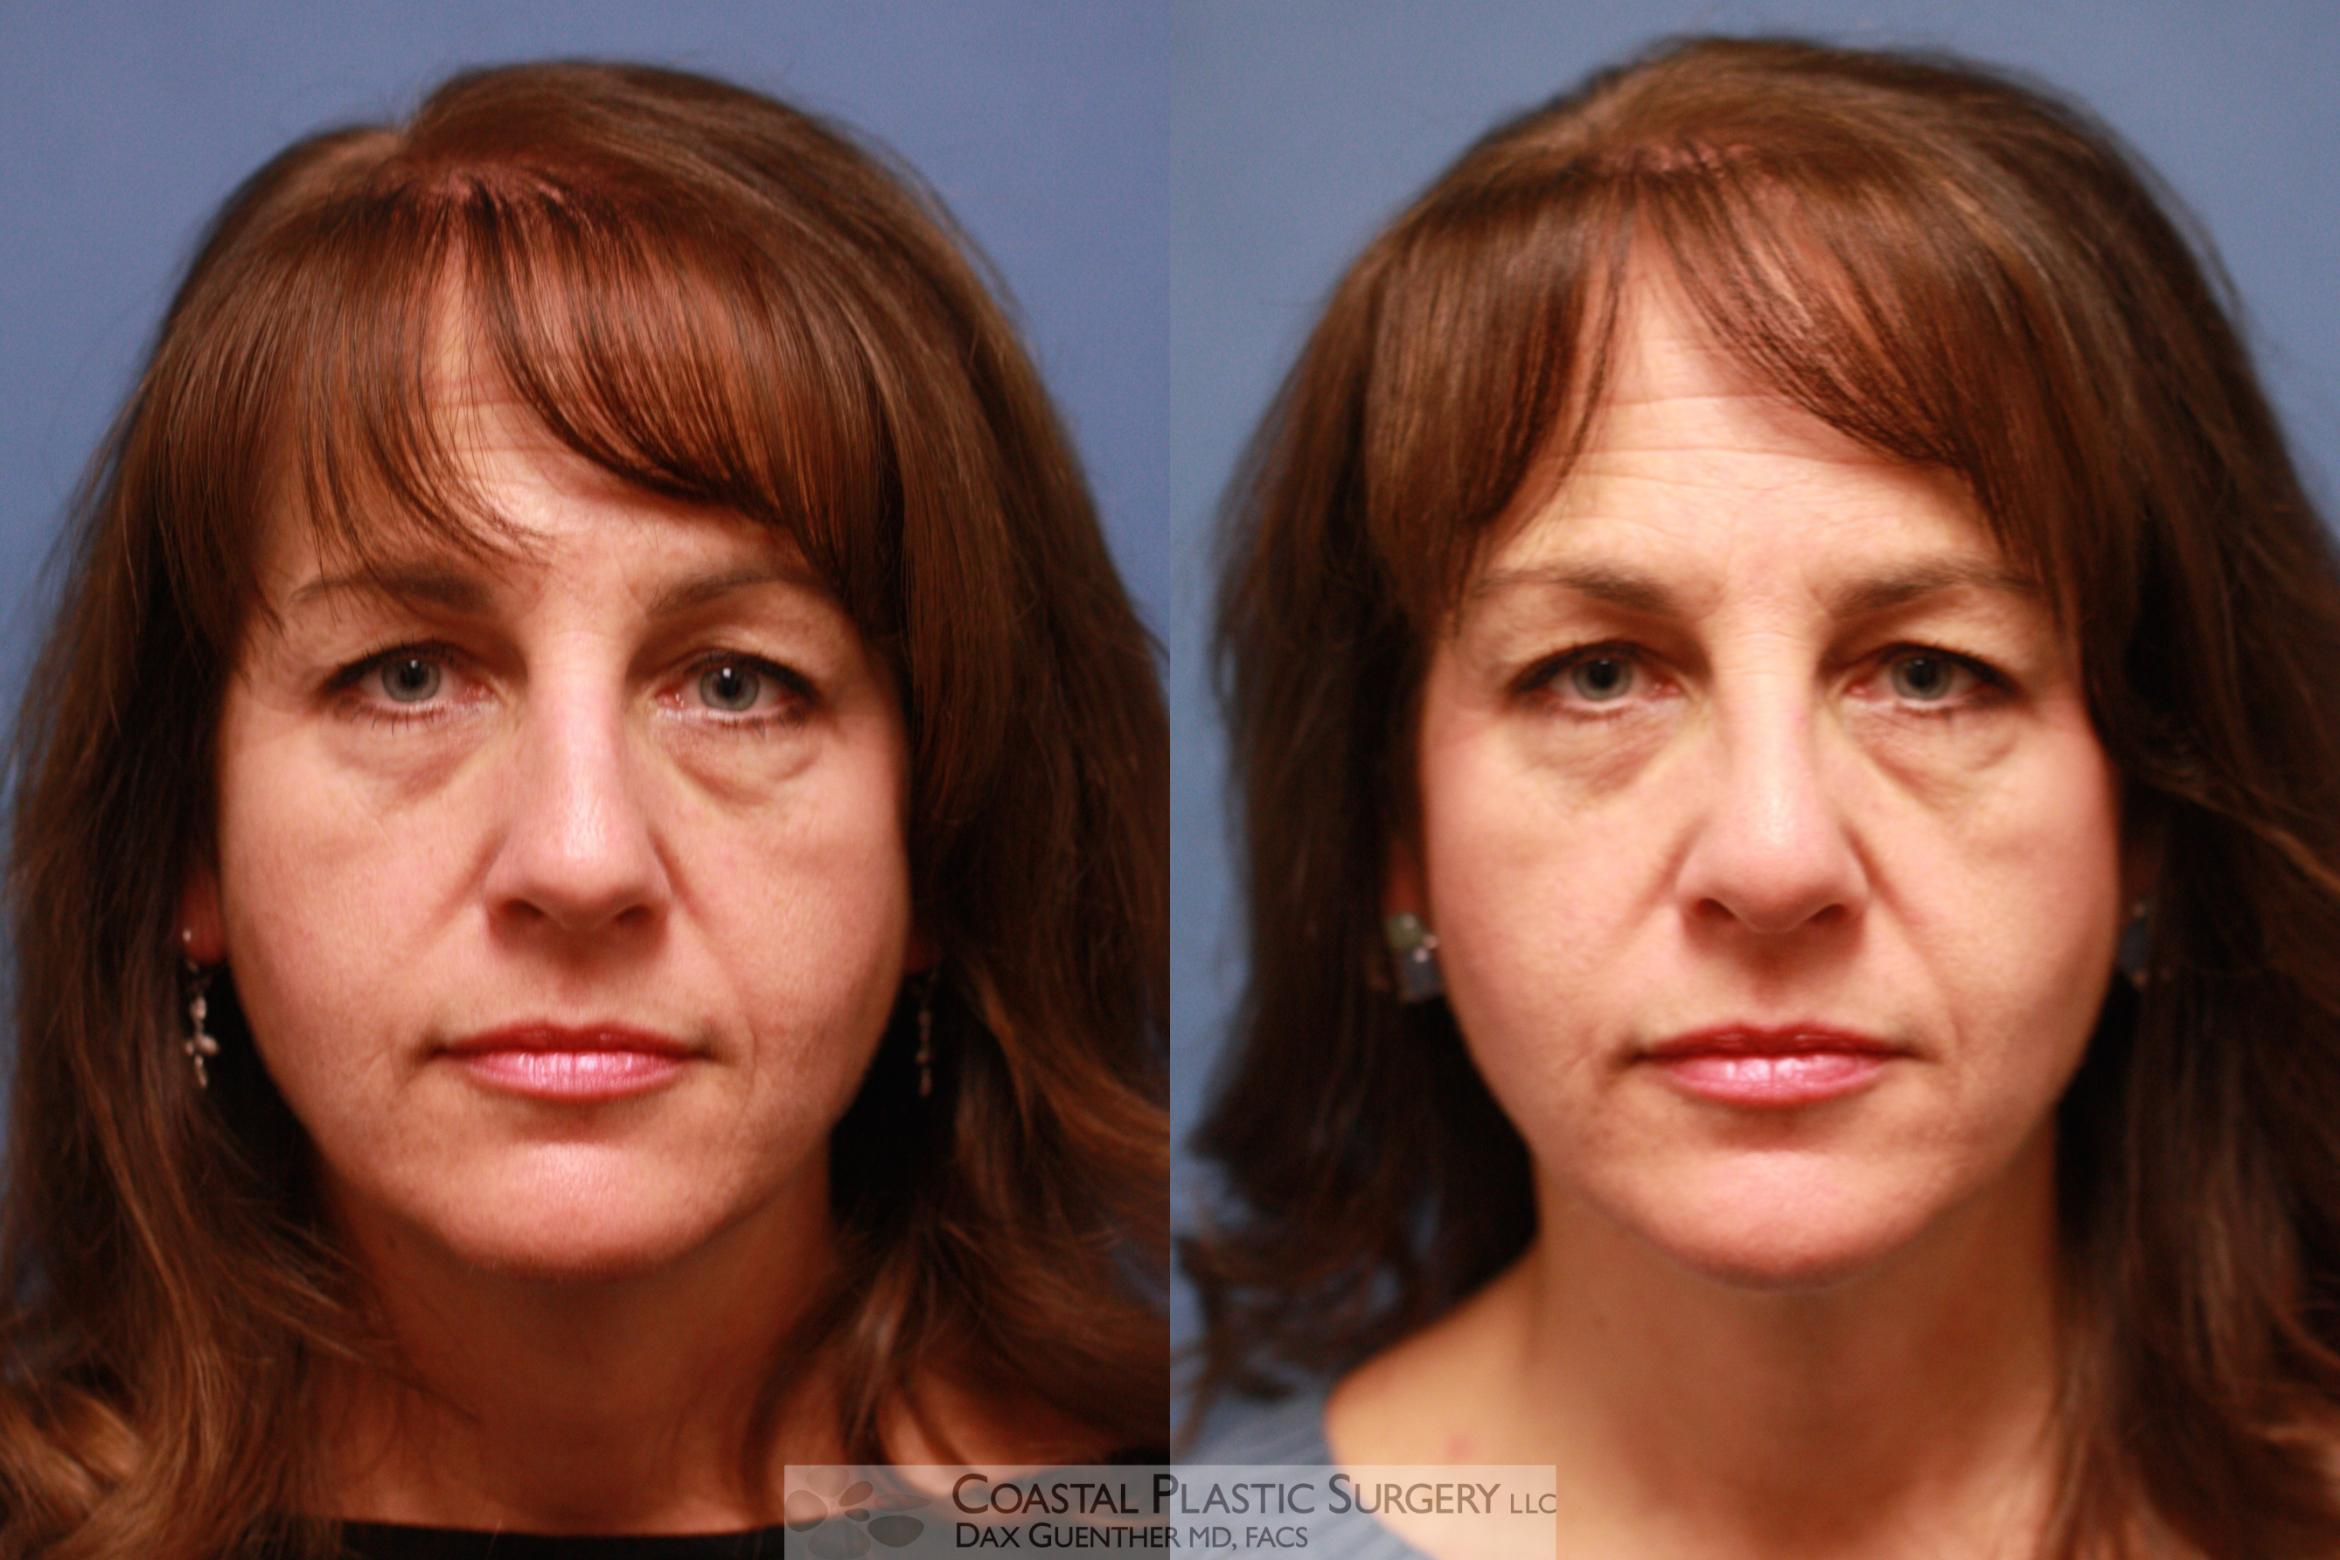 Rhinoplasty Before & After Photo | Hingham, MA | Dax Guenther, MD: Coastal Plastic Surgery